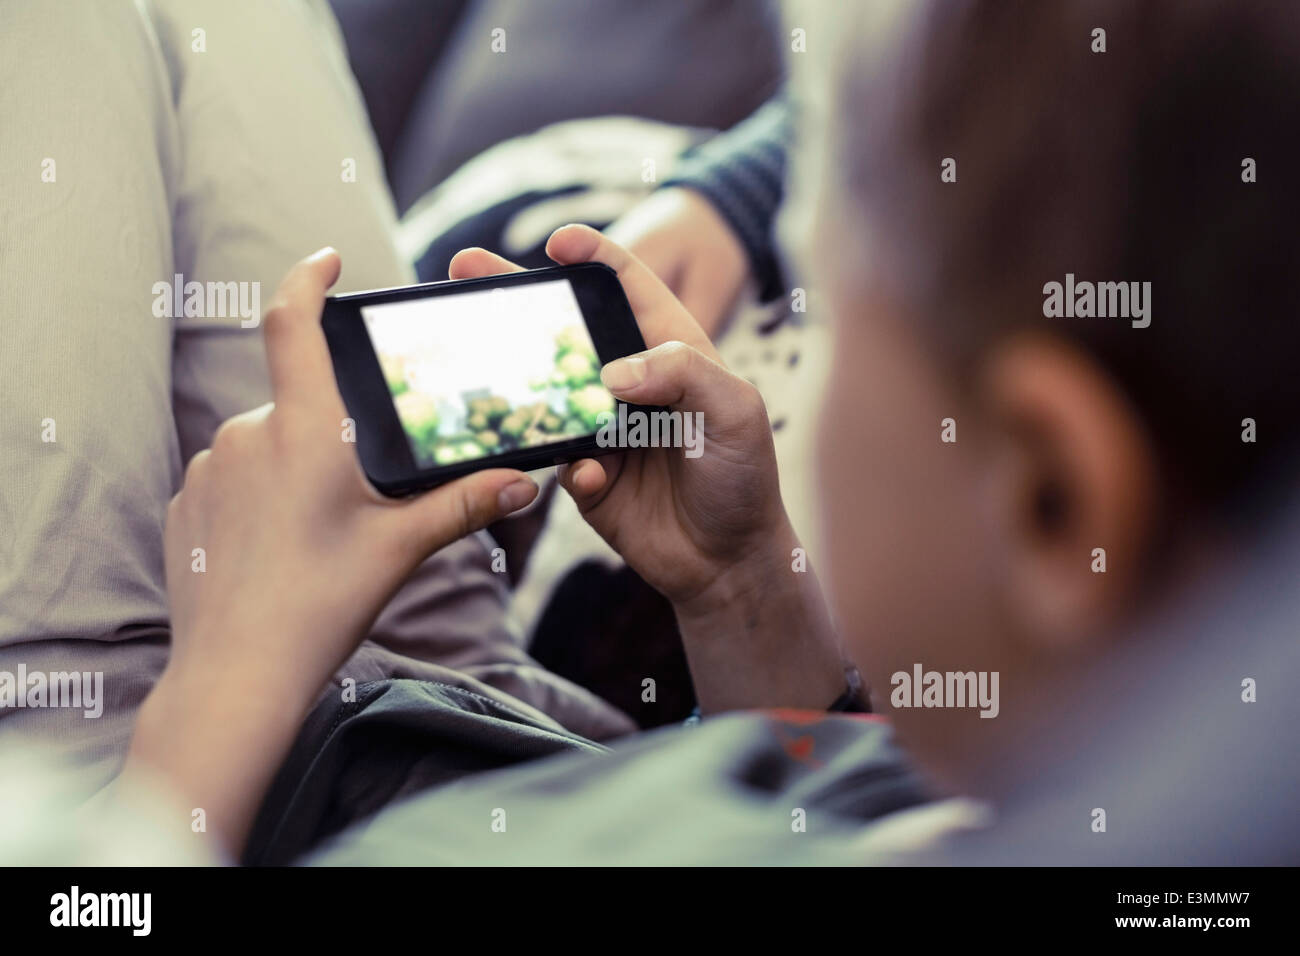 Boy playing game on mobile phone at home - Stock Image